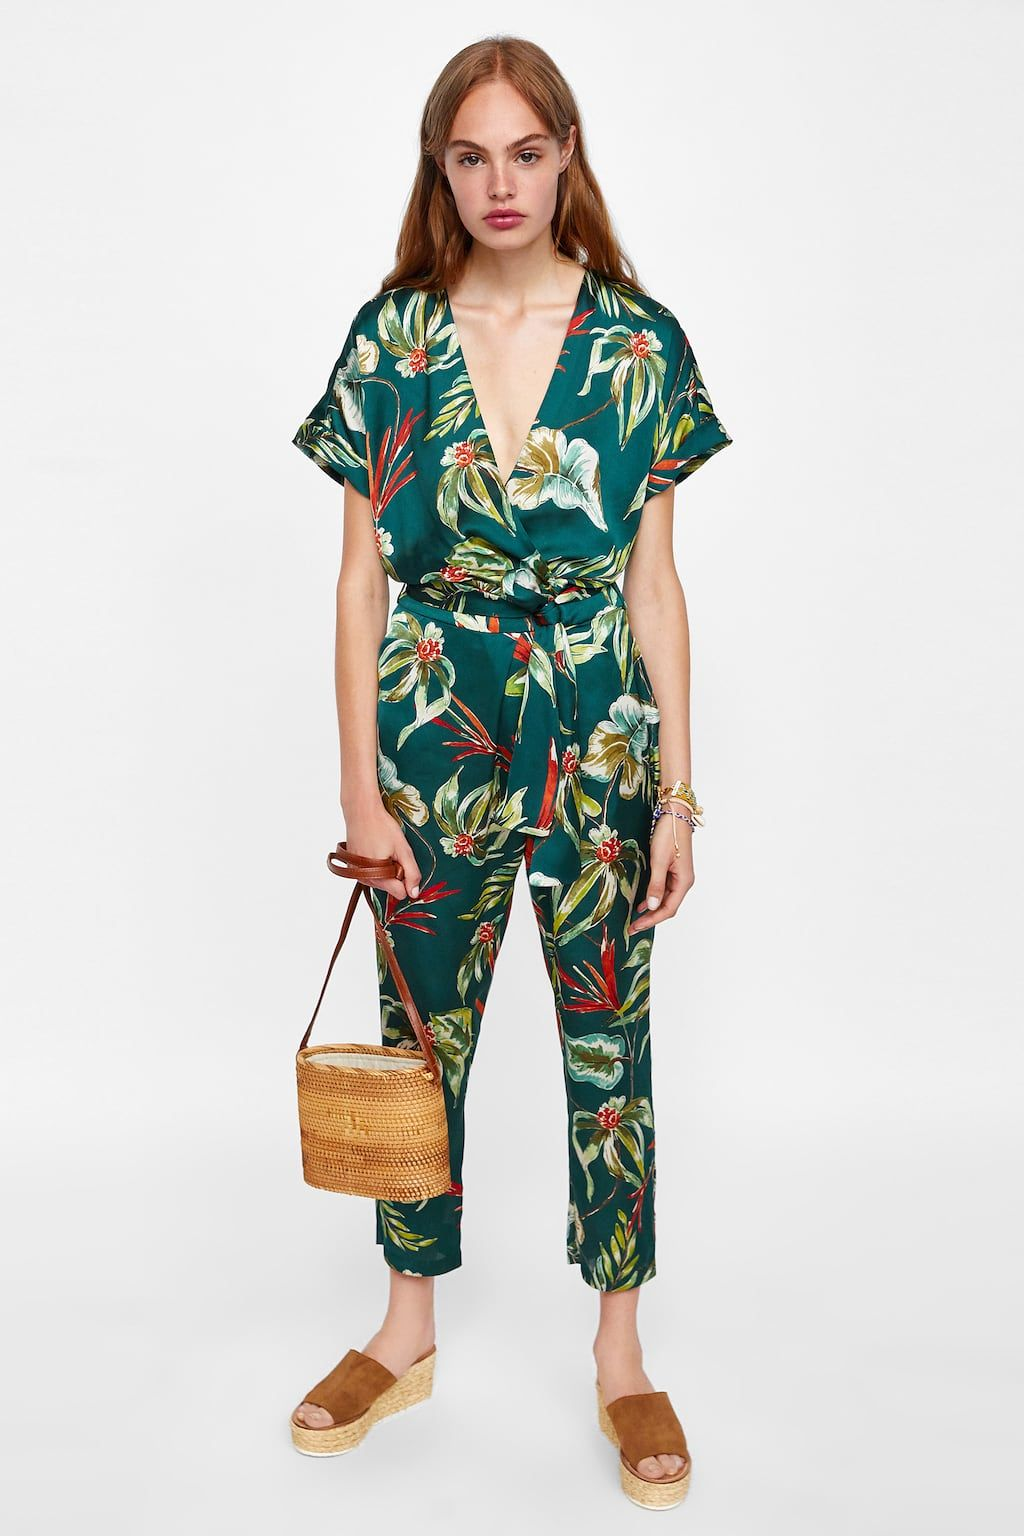 6dccd8a2 Image 1 of FLORAL PRINT JUMPSUIT from Zara | Dresses | Zara jumpsuit ...